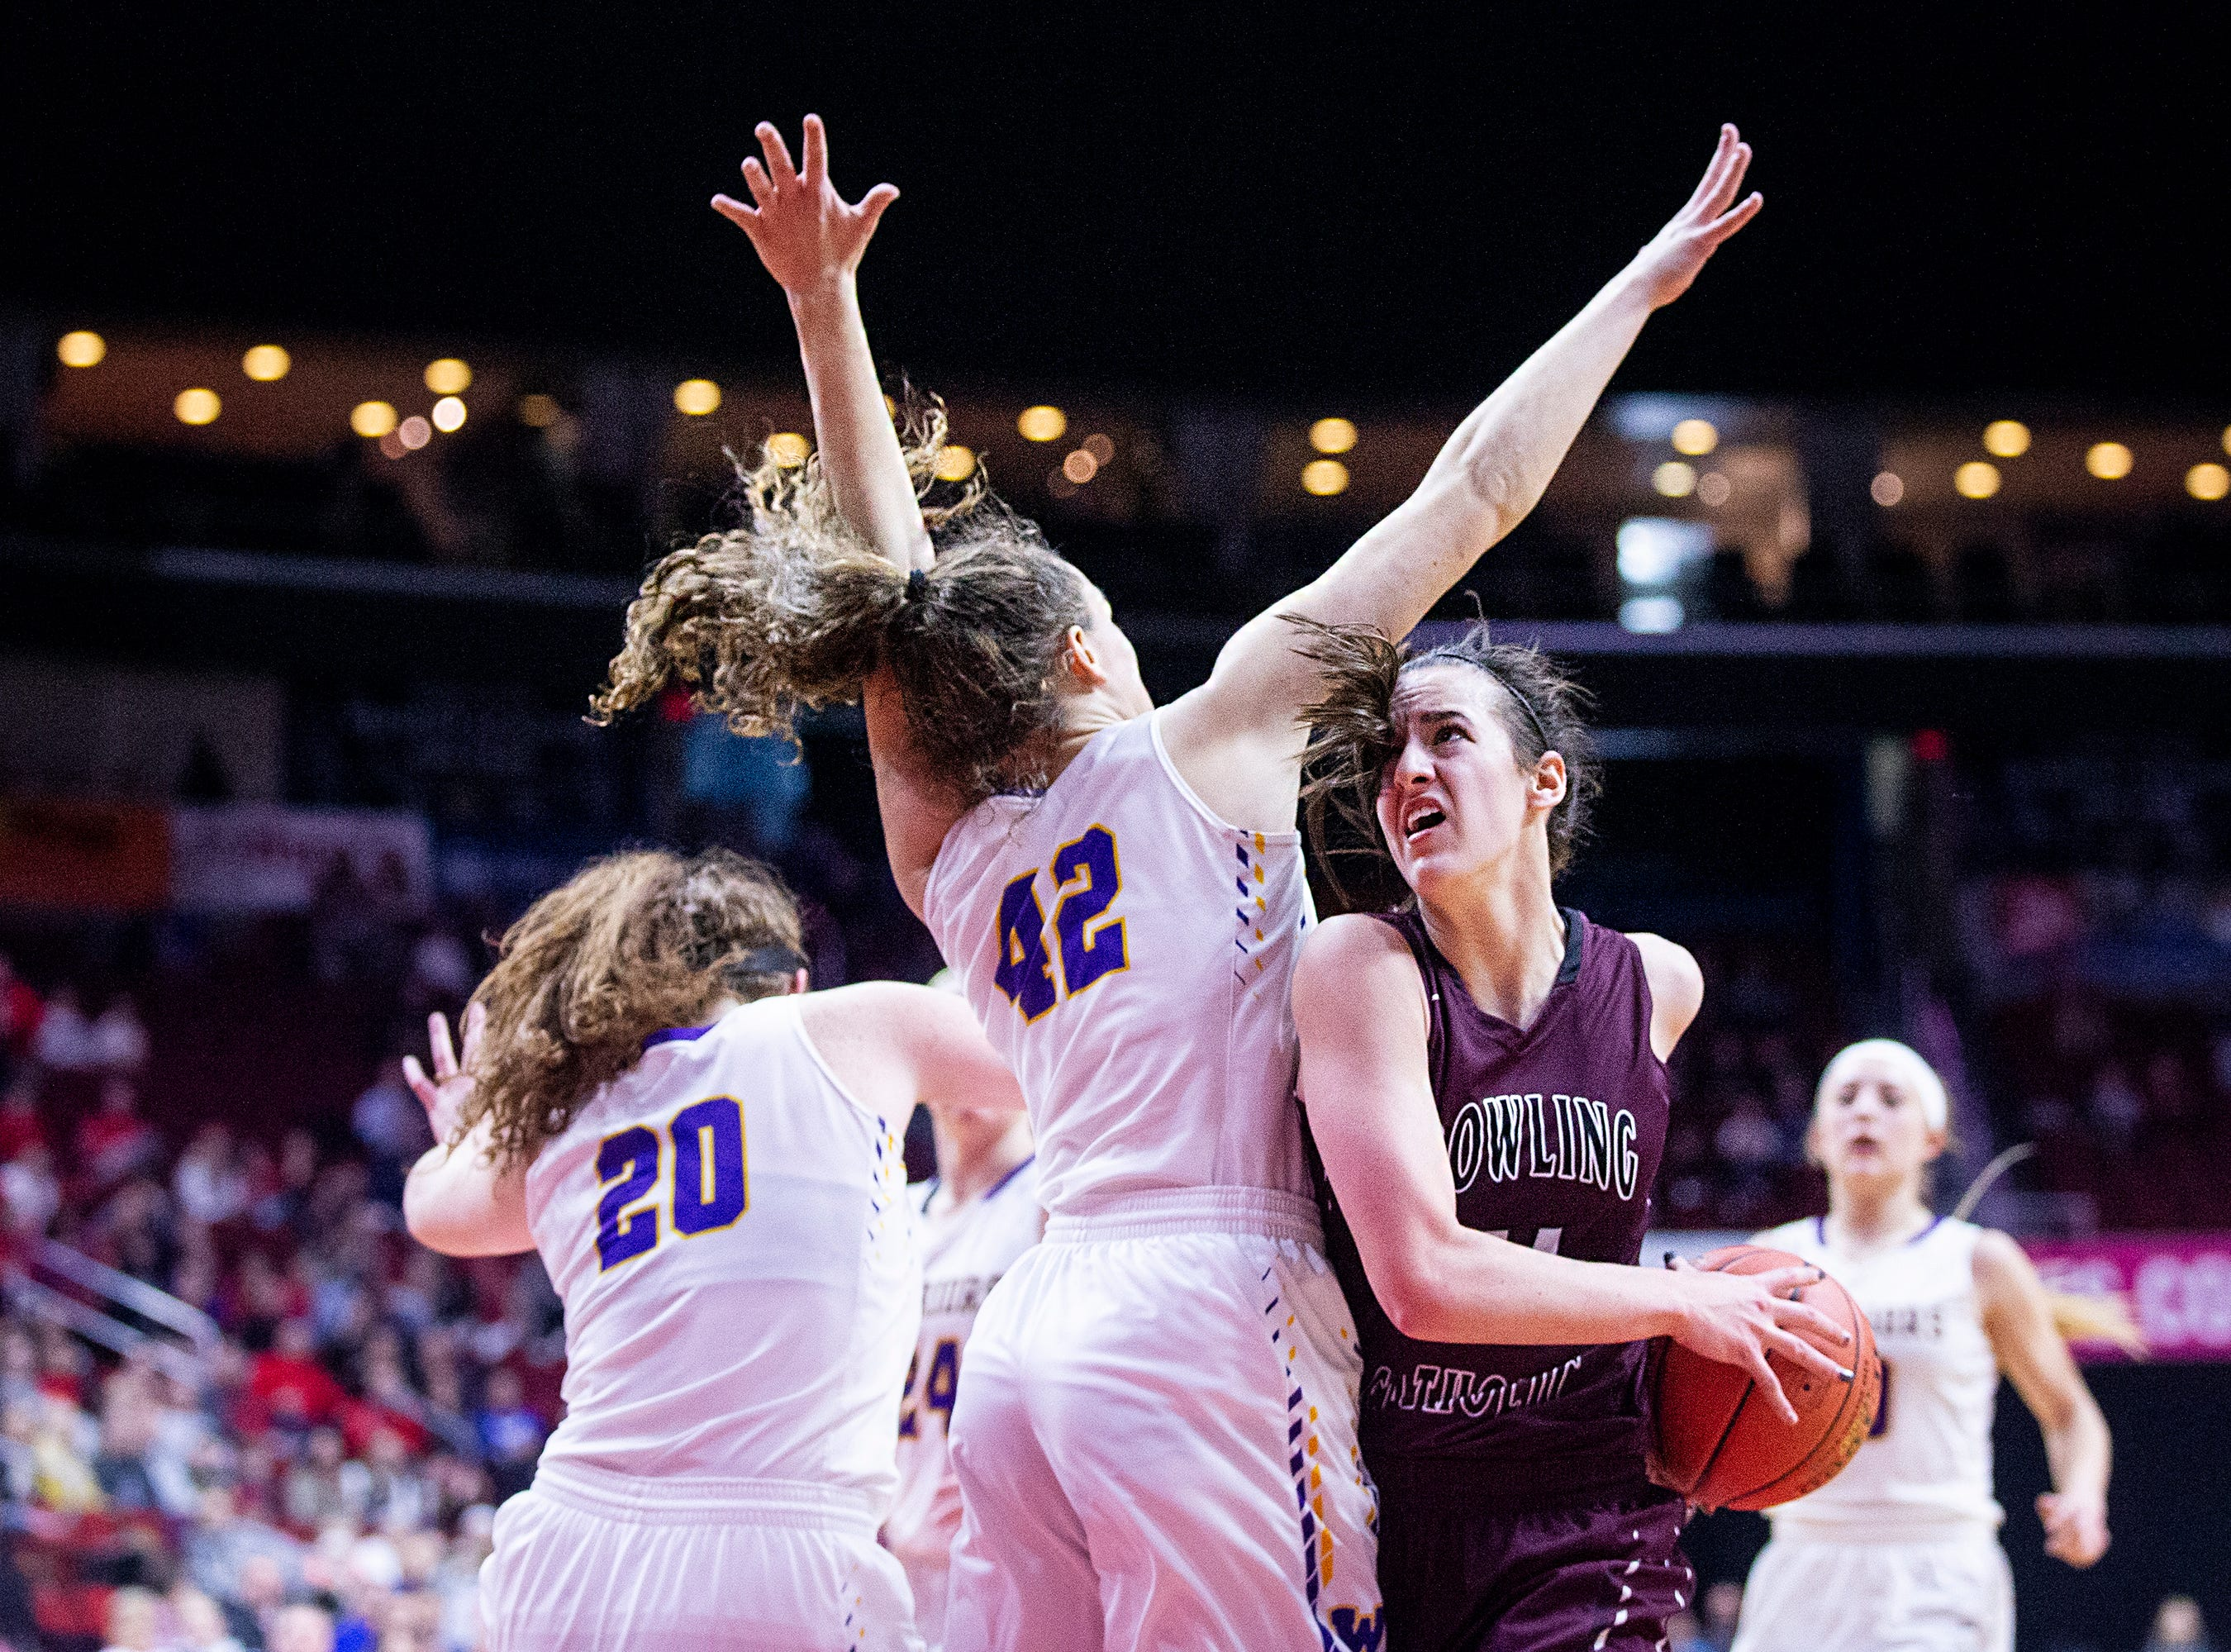 Dowling's Caitlin Clark drives to the hoop during the Class 5A Iowa girls' state basketball tournament quarterfinal between Dowling Catholic and Waukee on Monday, Feb. 25, 2019, in Wells Fargo Arena.